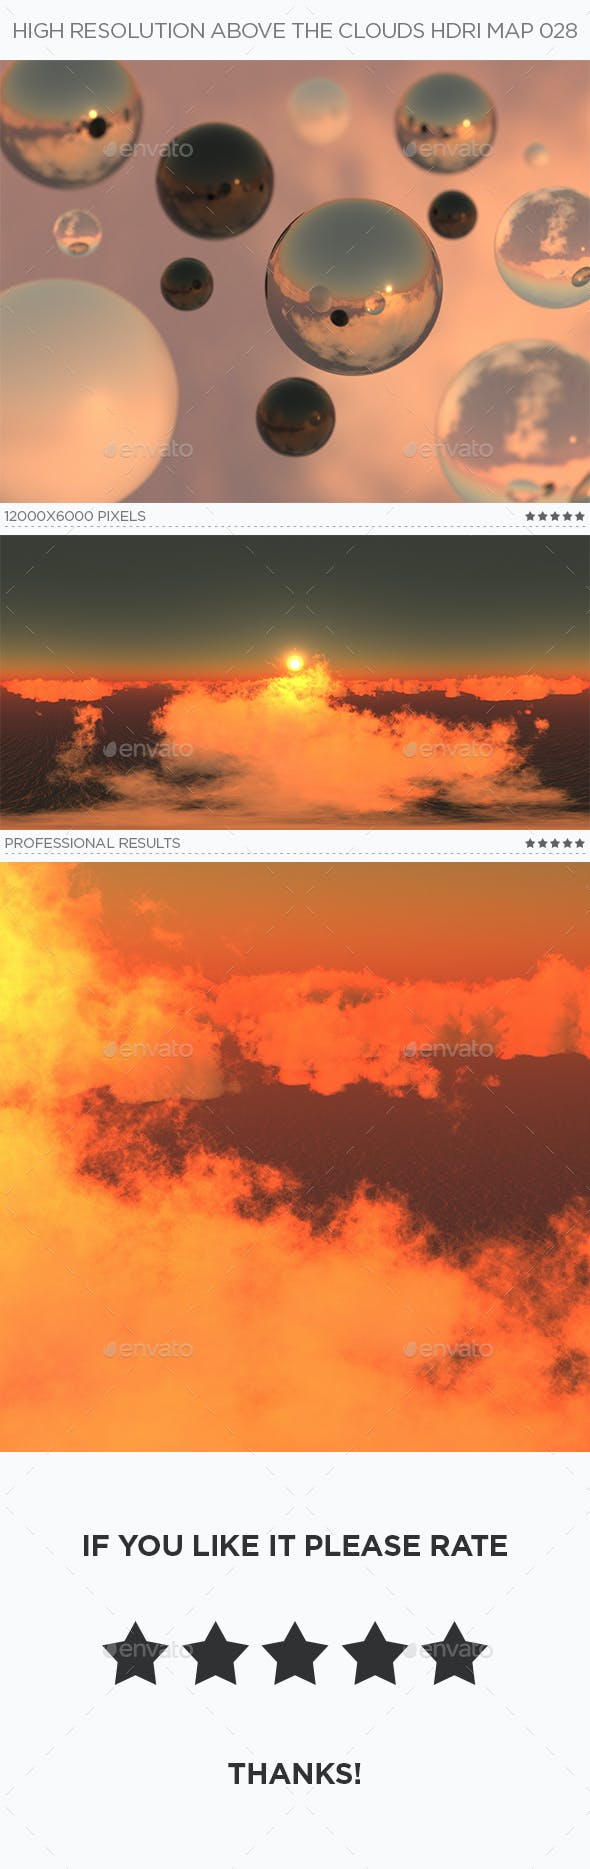 High Resolution Above The Clouds HDRi Map 028 - 3DOcean Item for Sale